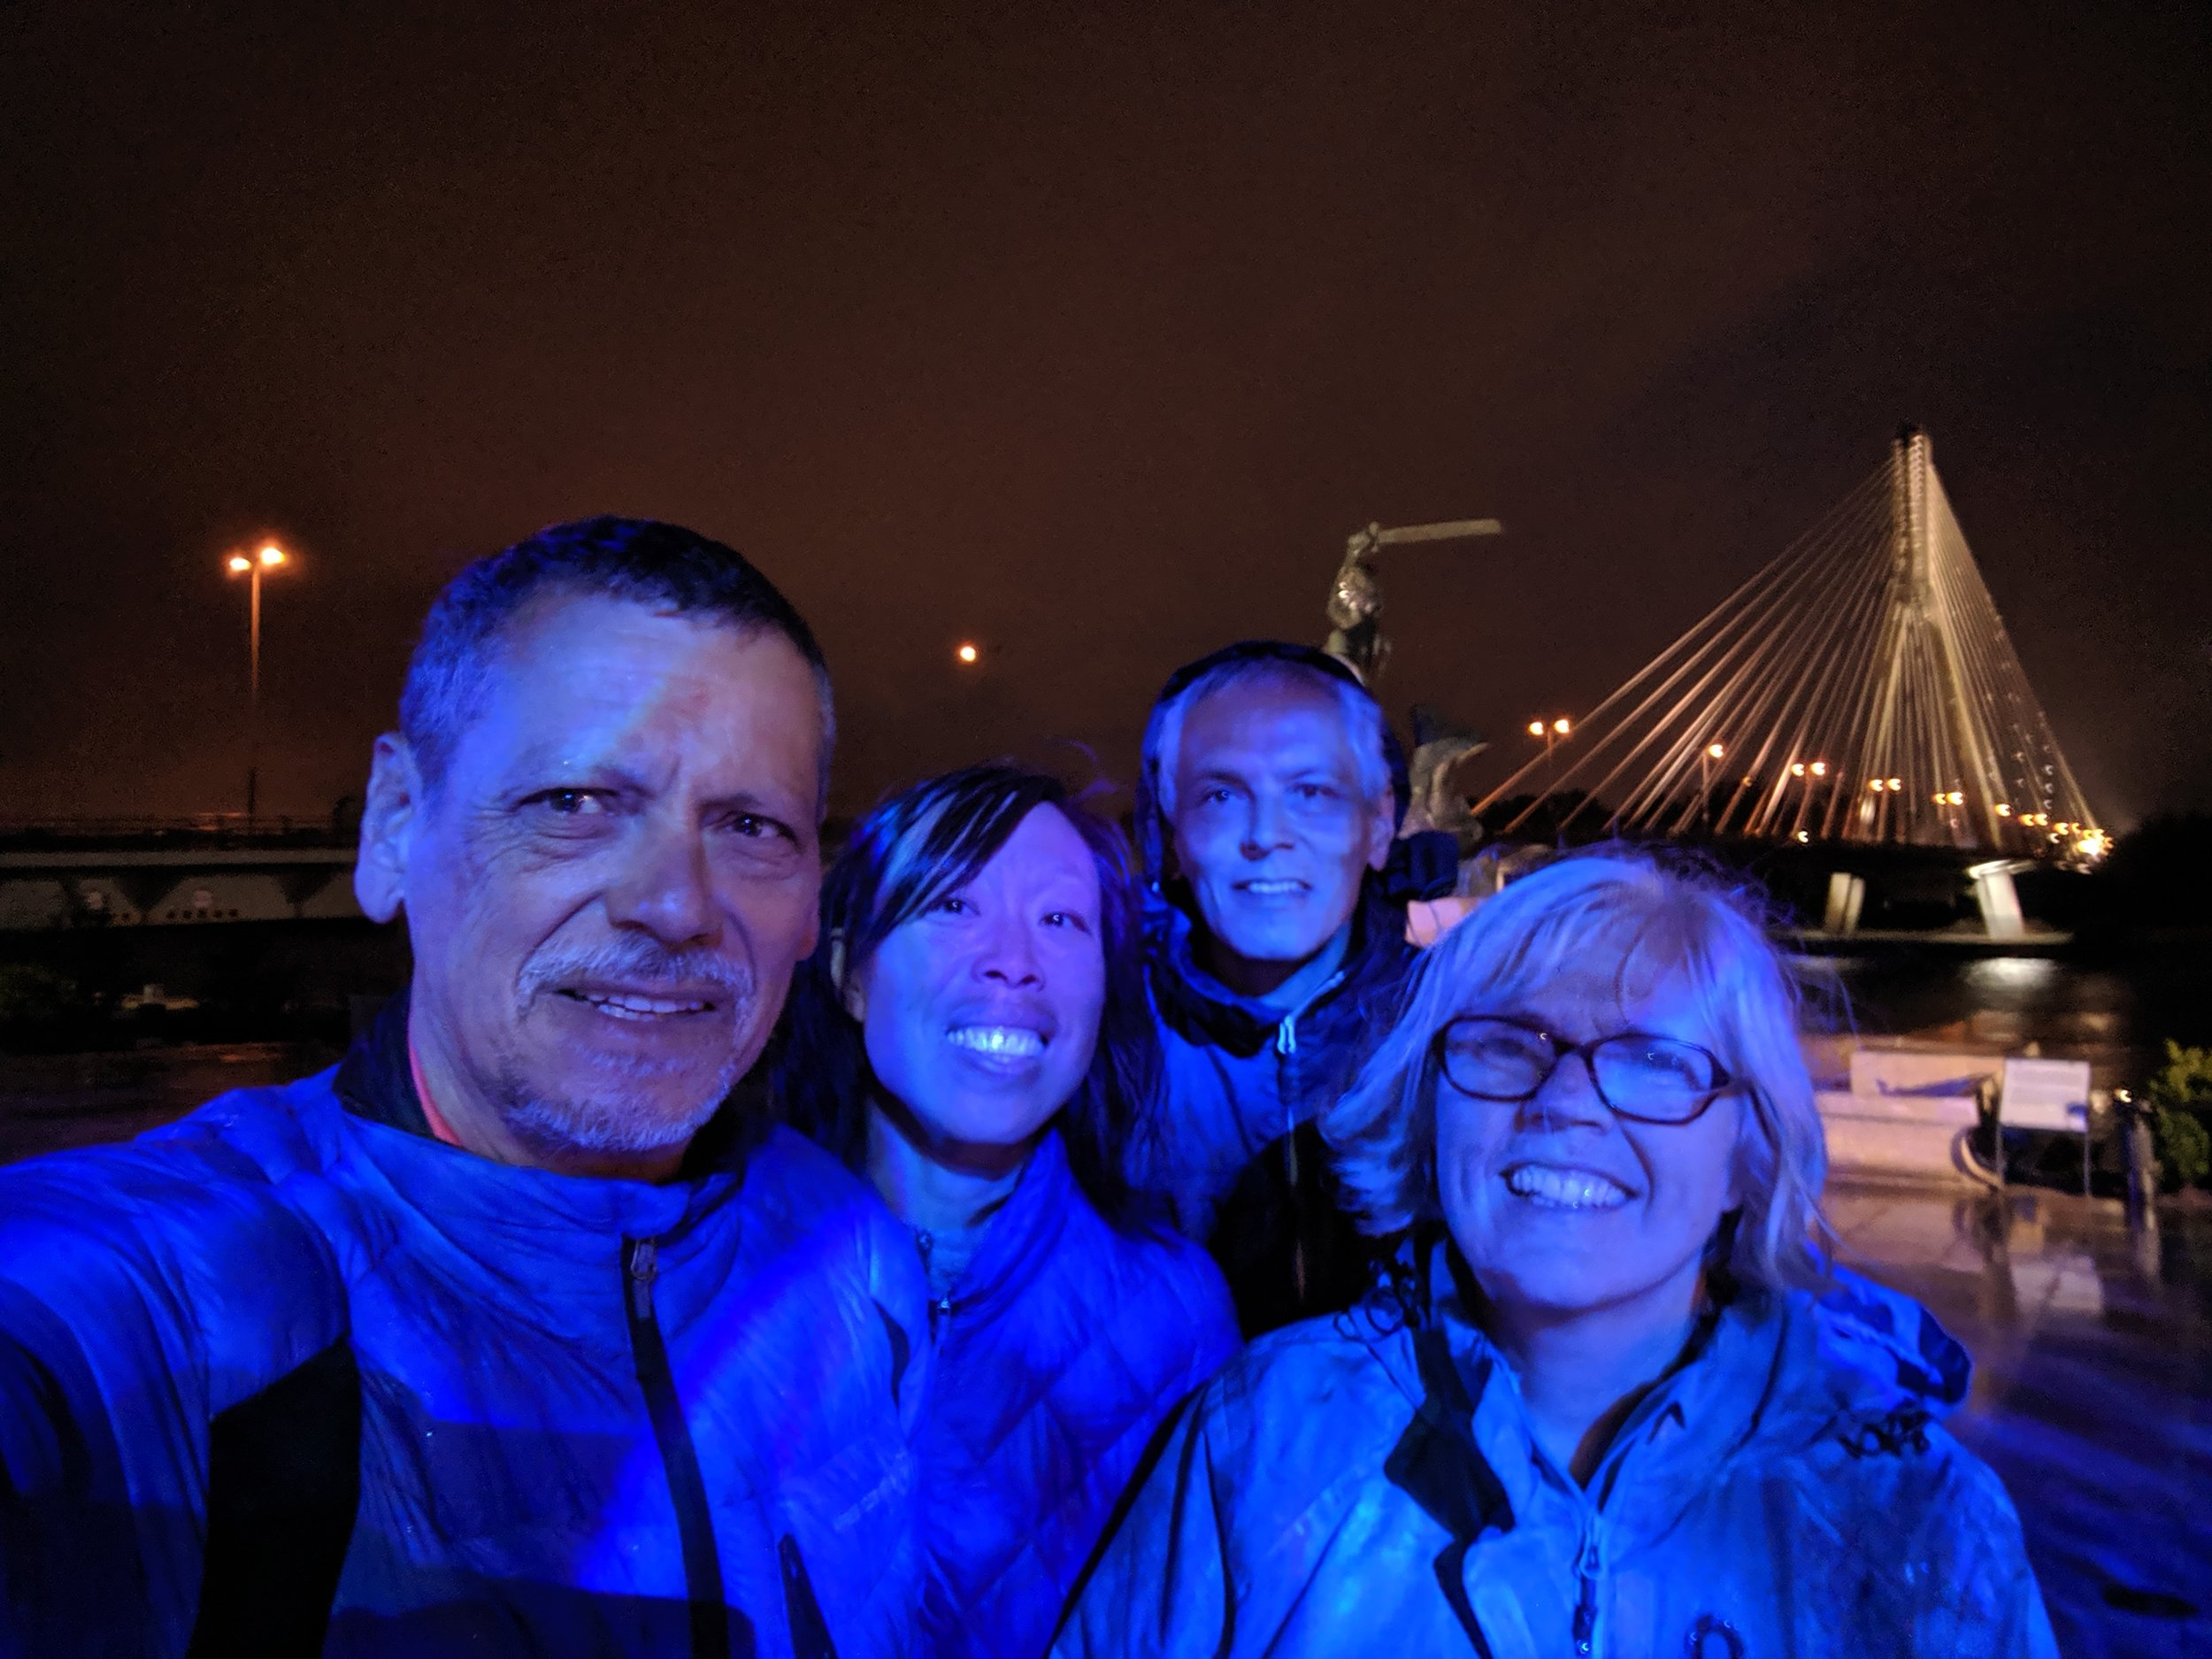 Wet evening after we arrived in Warsaw — Mark, Andrea, Chris and Sarah, by the Vistula (Wiswa) River.